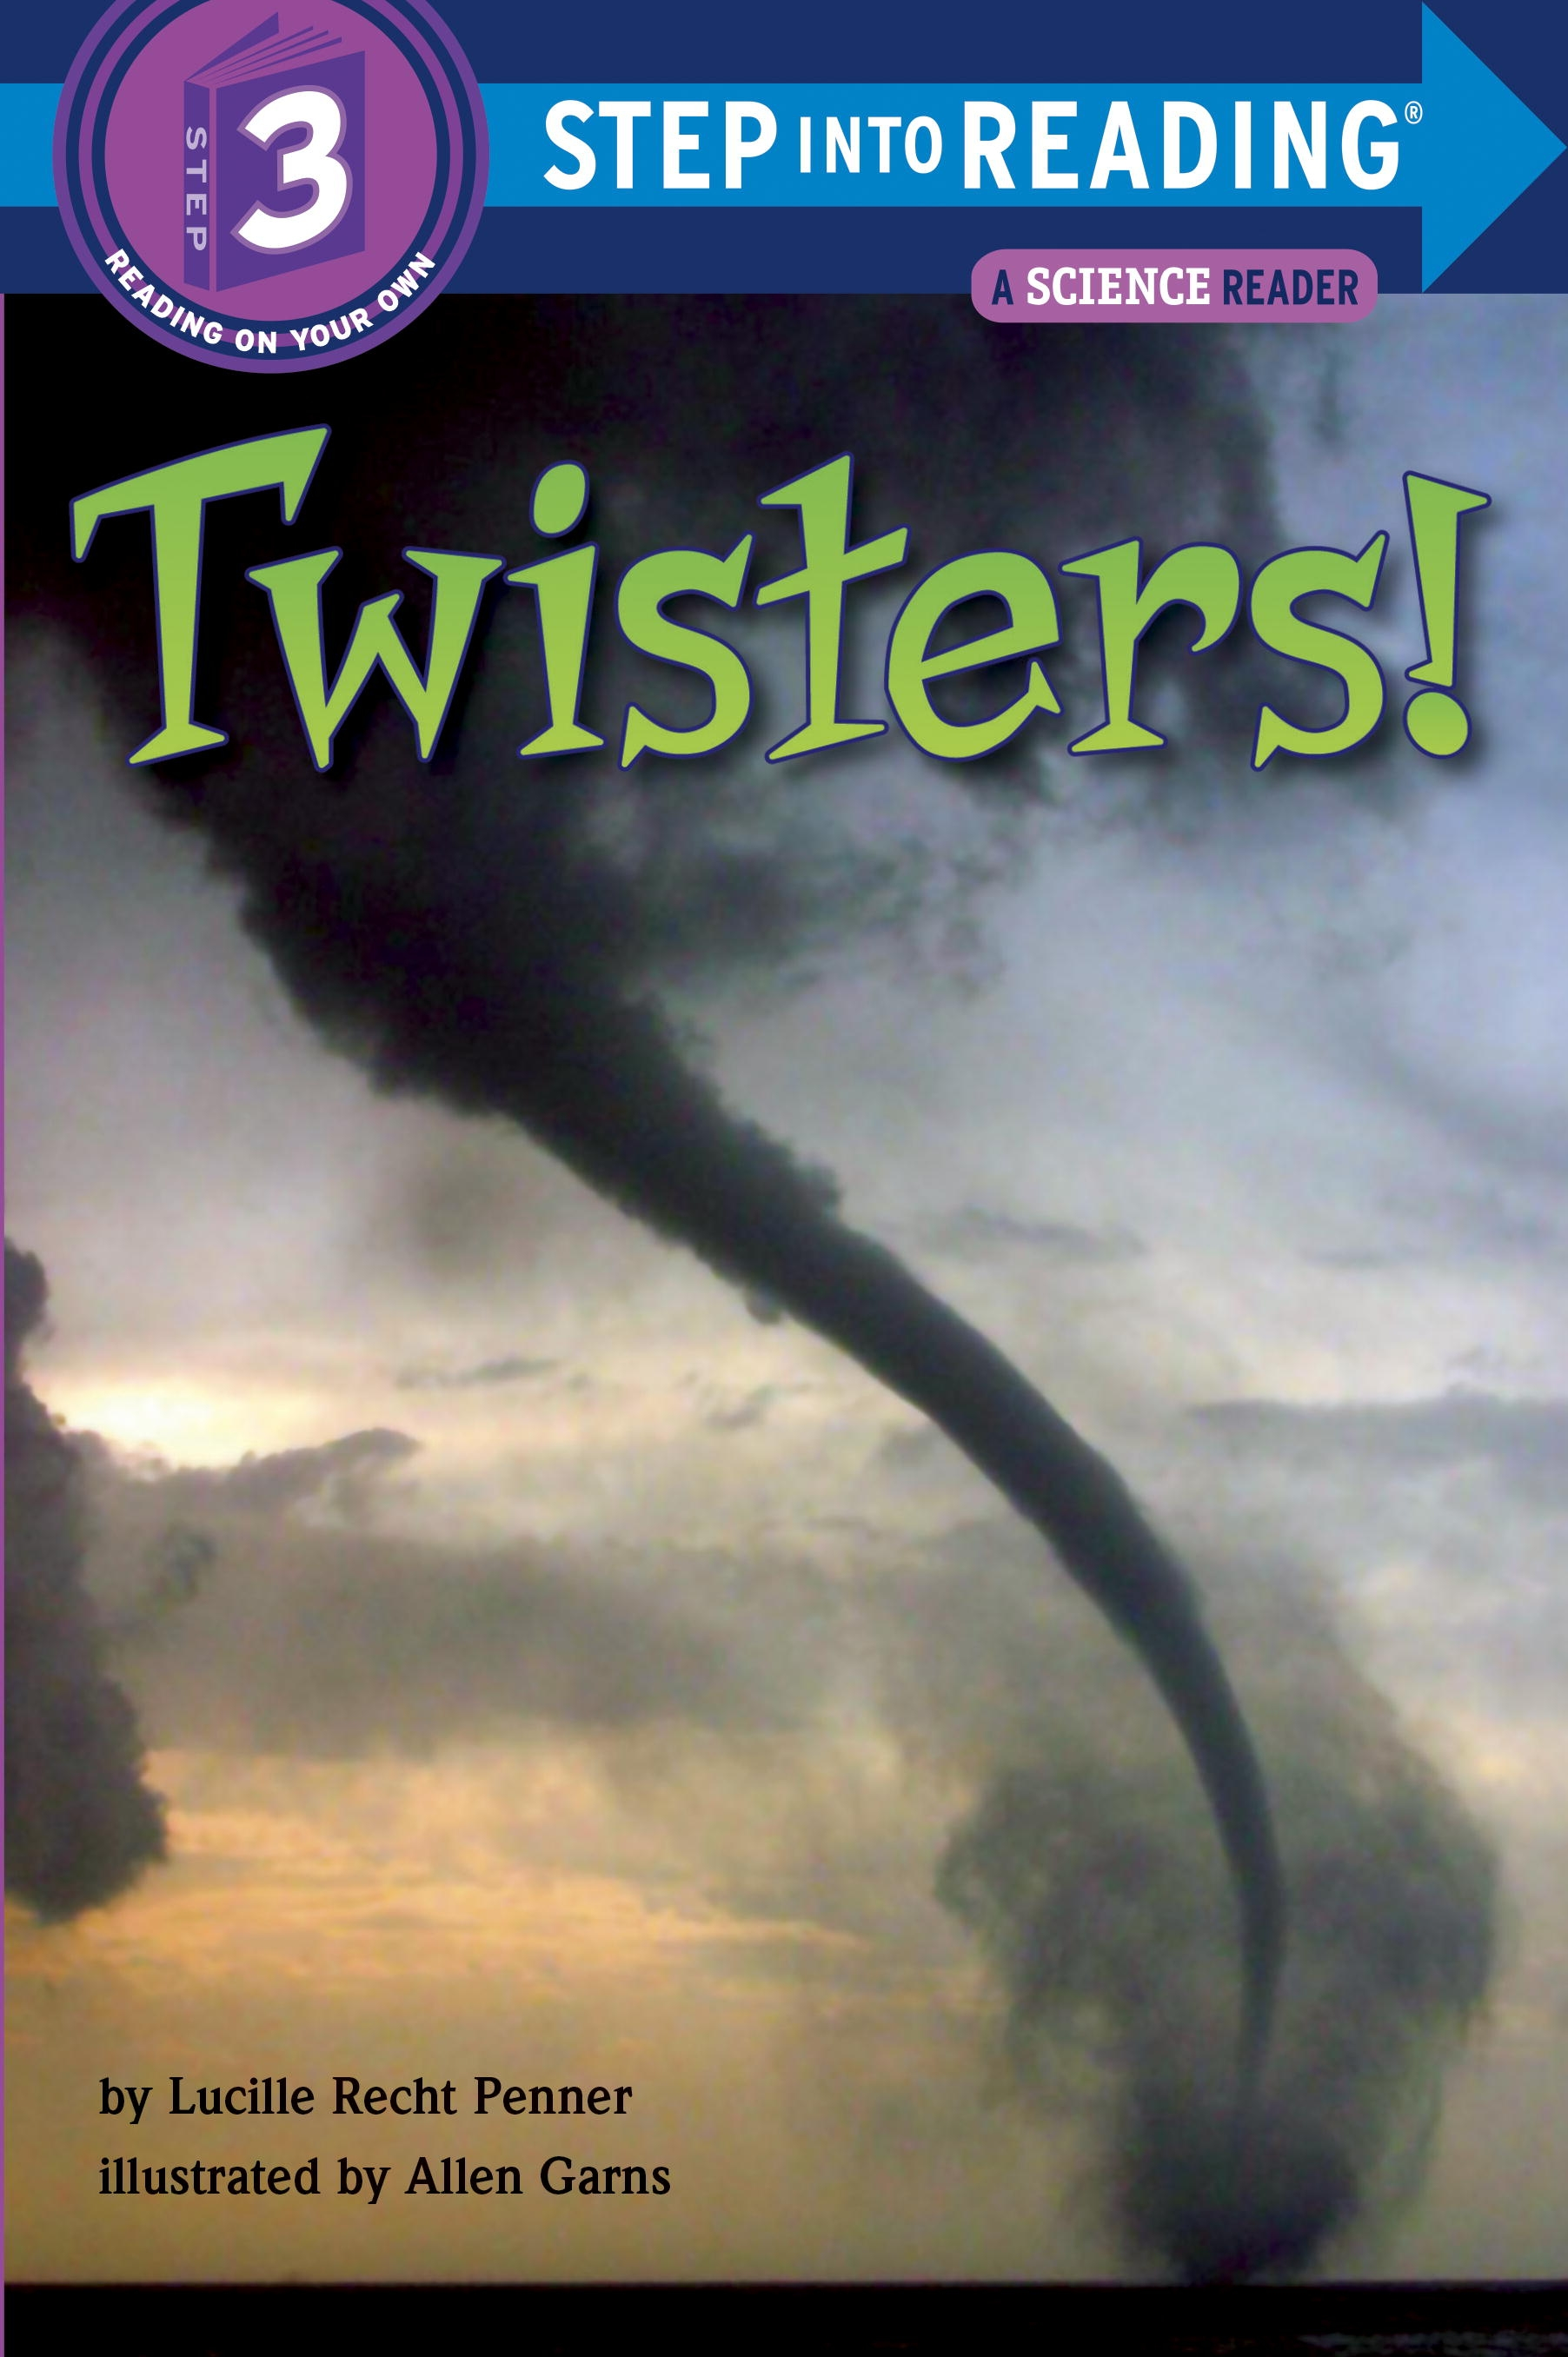 Twisters! Step Into Reading 3. By Lucille Recht Penner